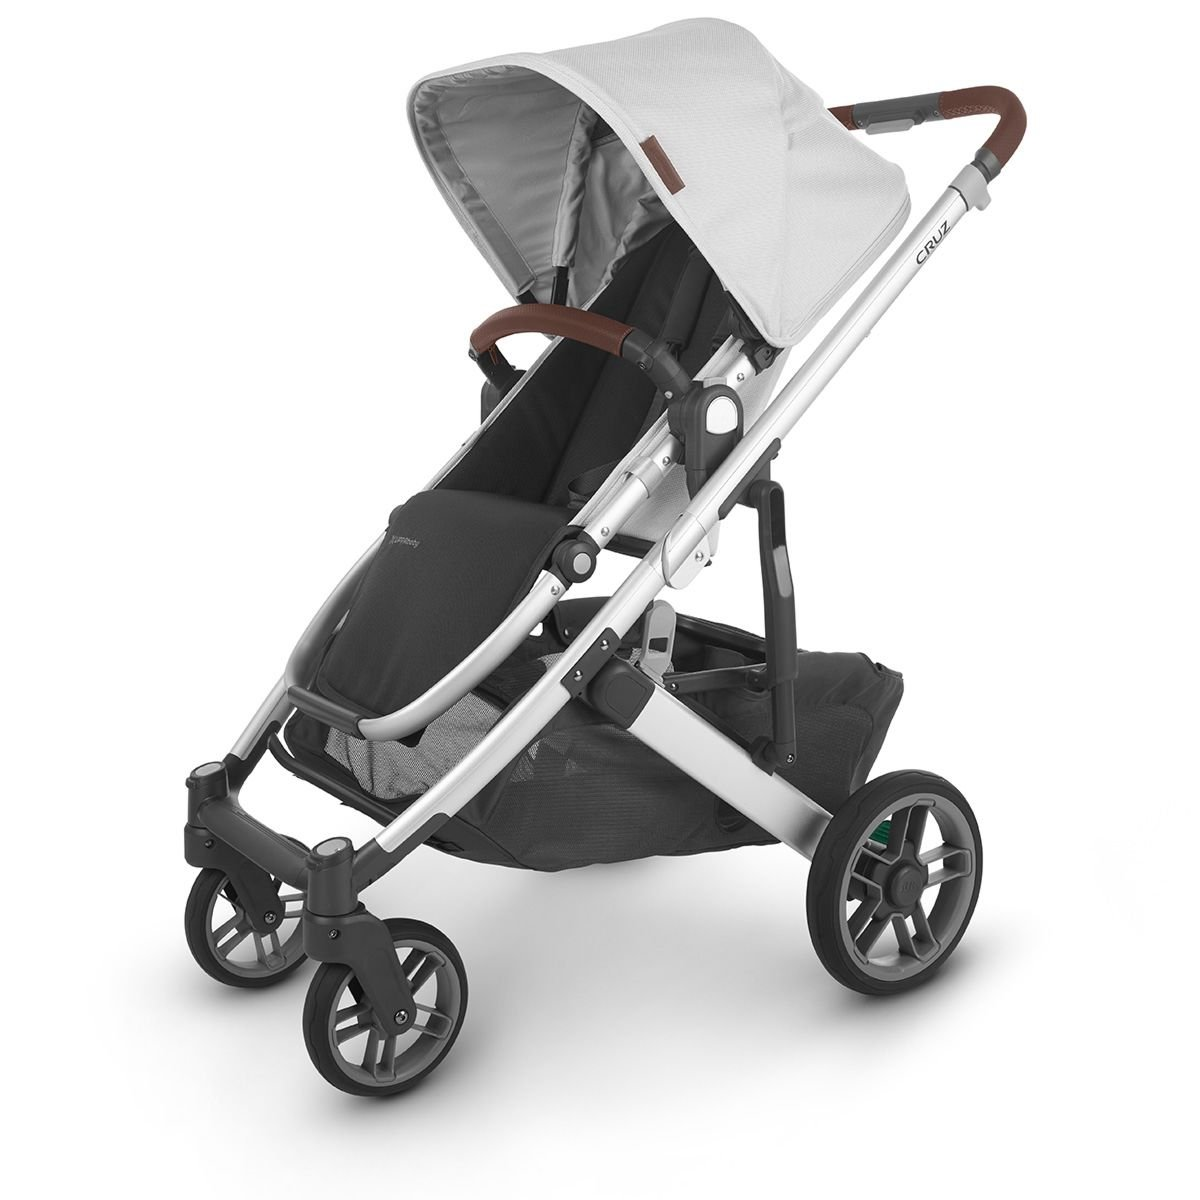 UPPABaby CRUZ V2 Stroller - BRYCE (White Marl/Silver/Saddle Leather)